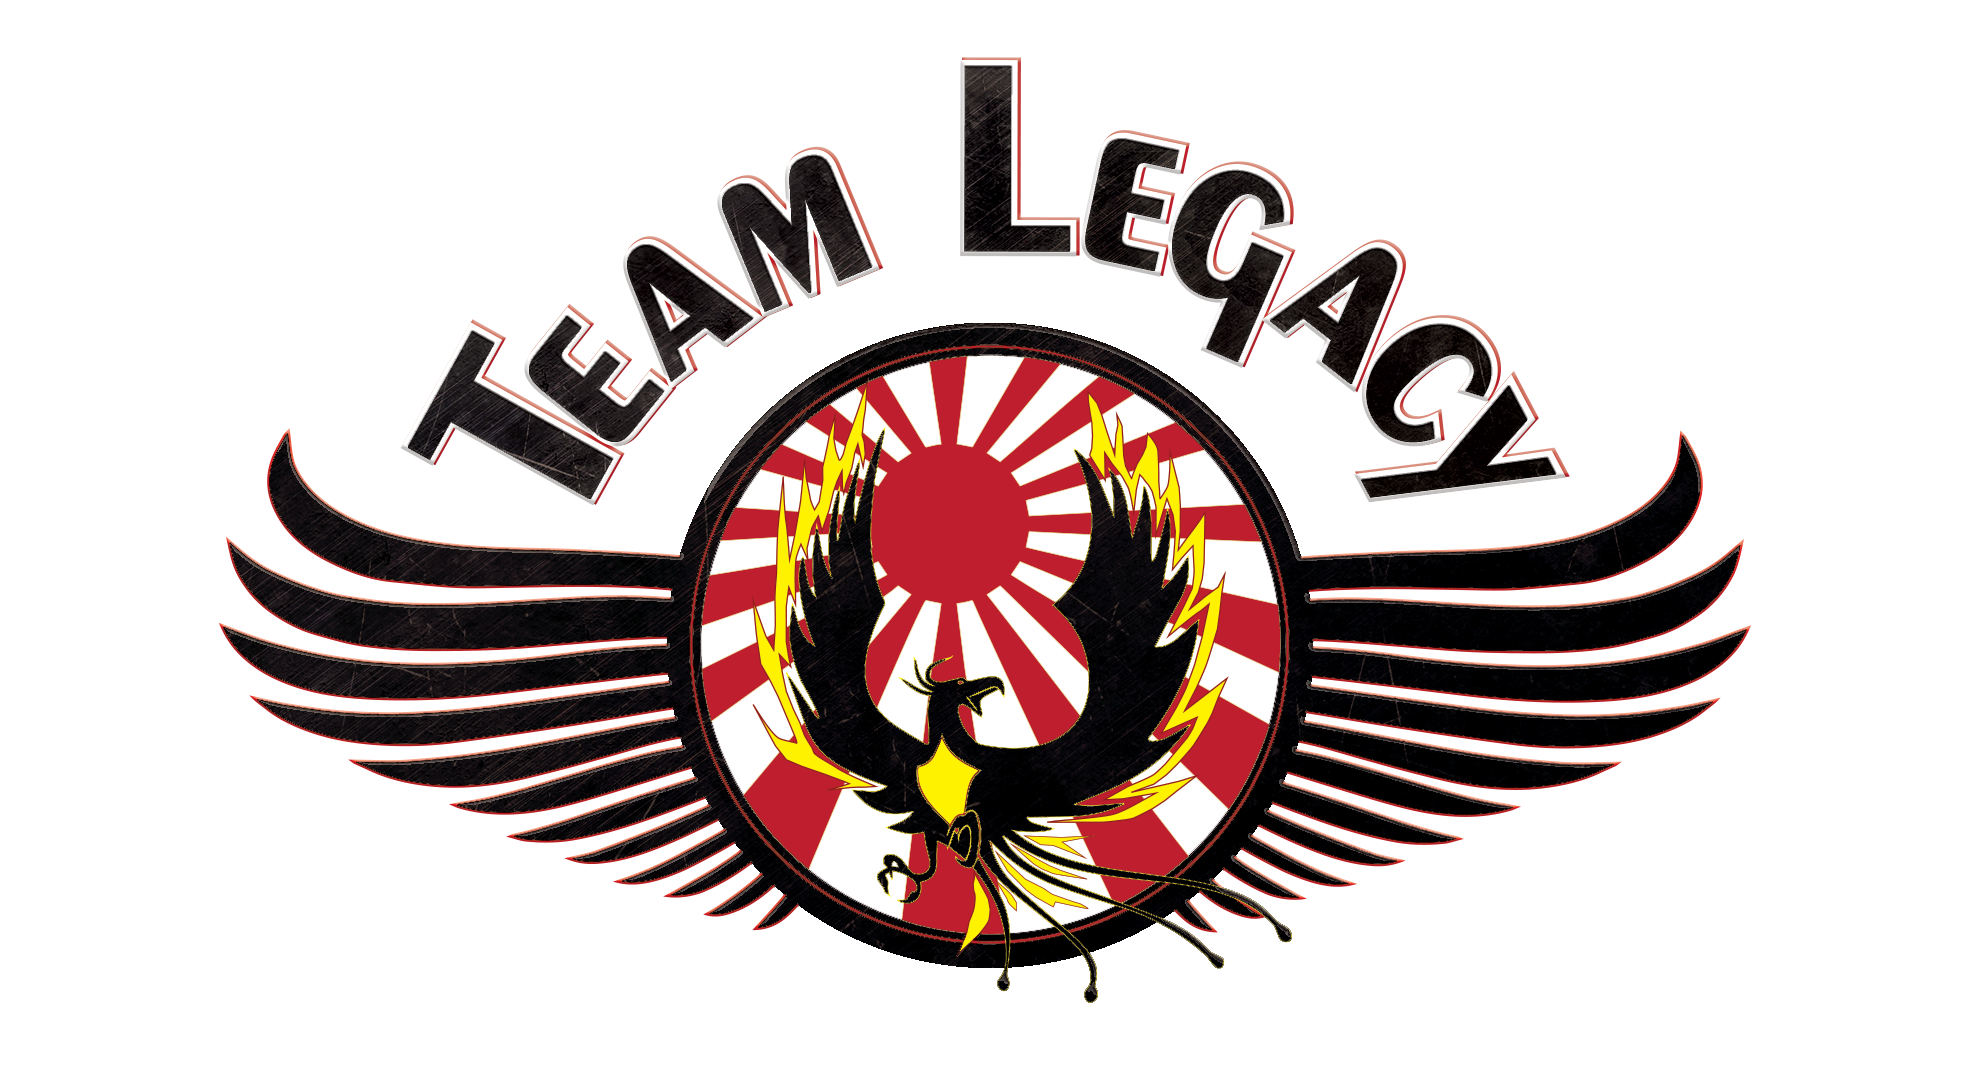 JOIN TEAM LEGACY!